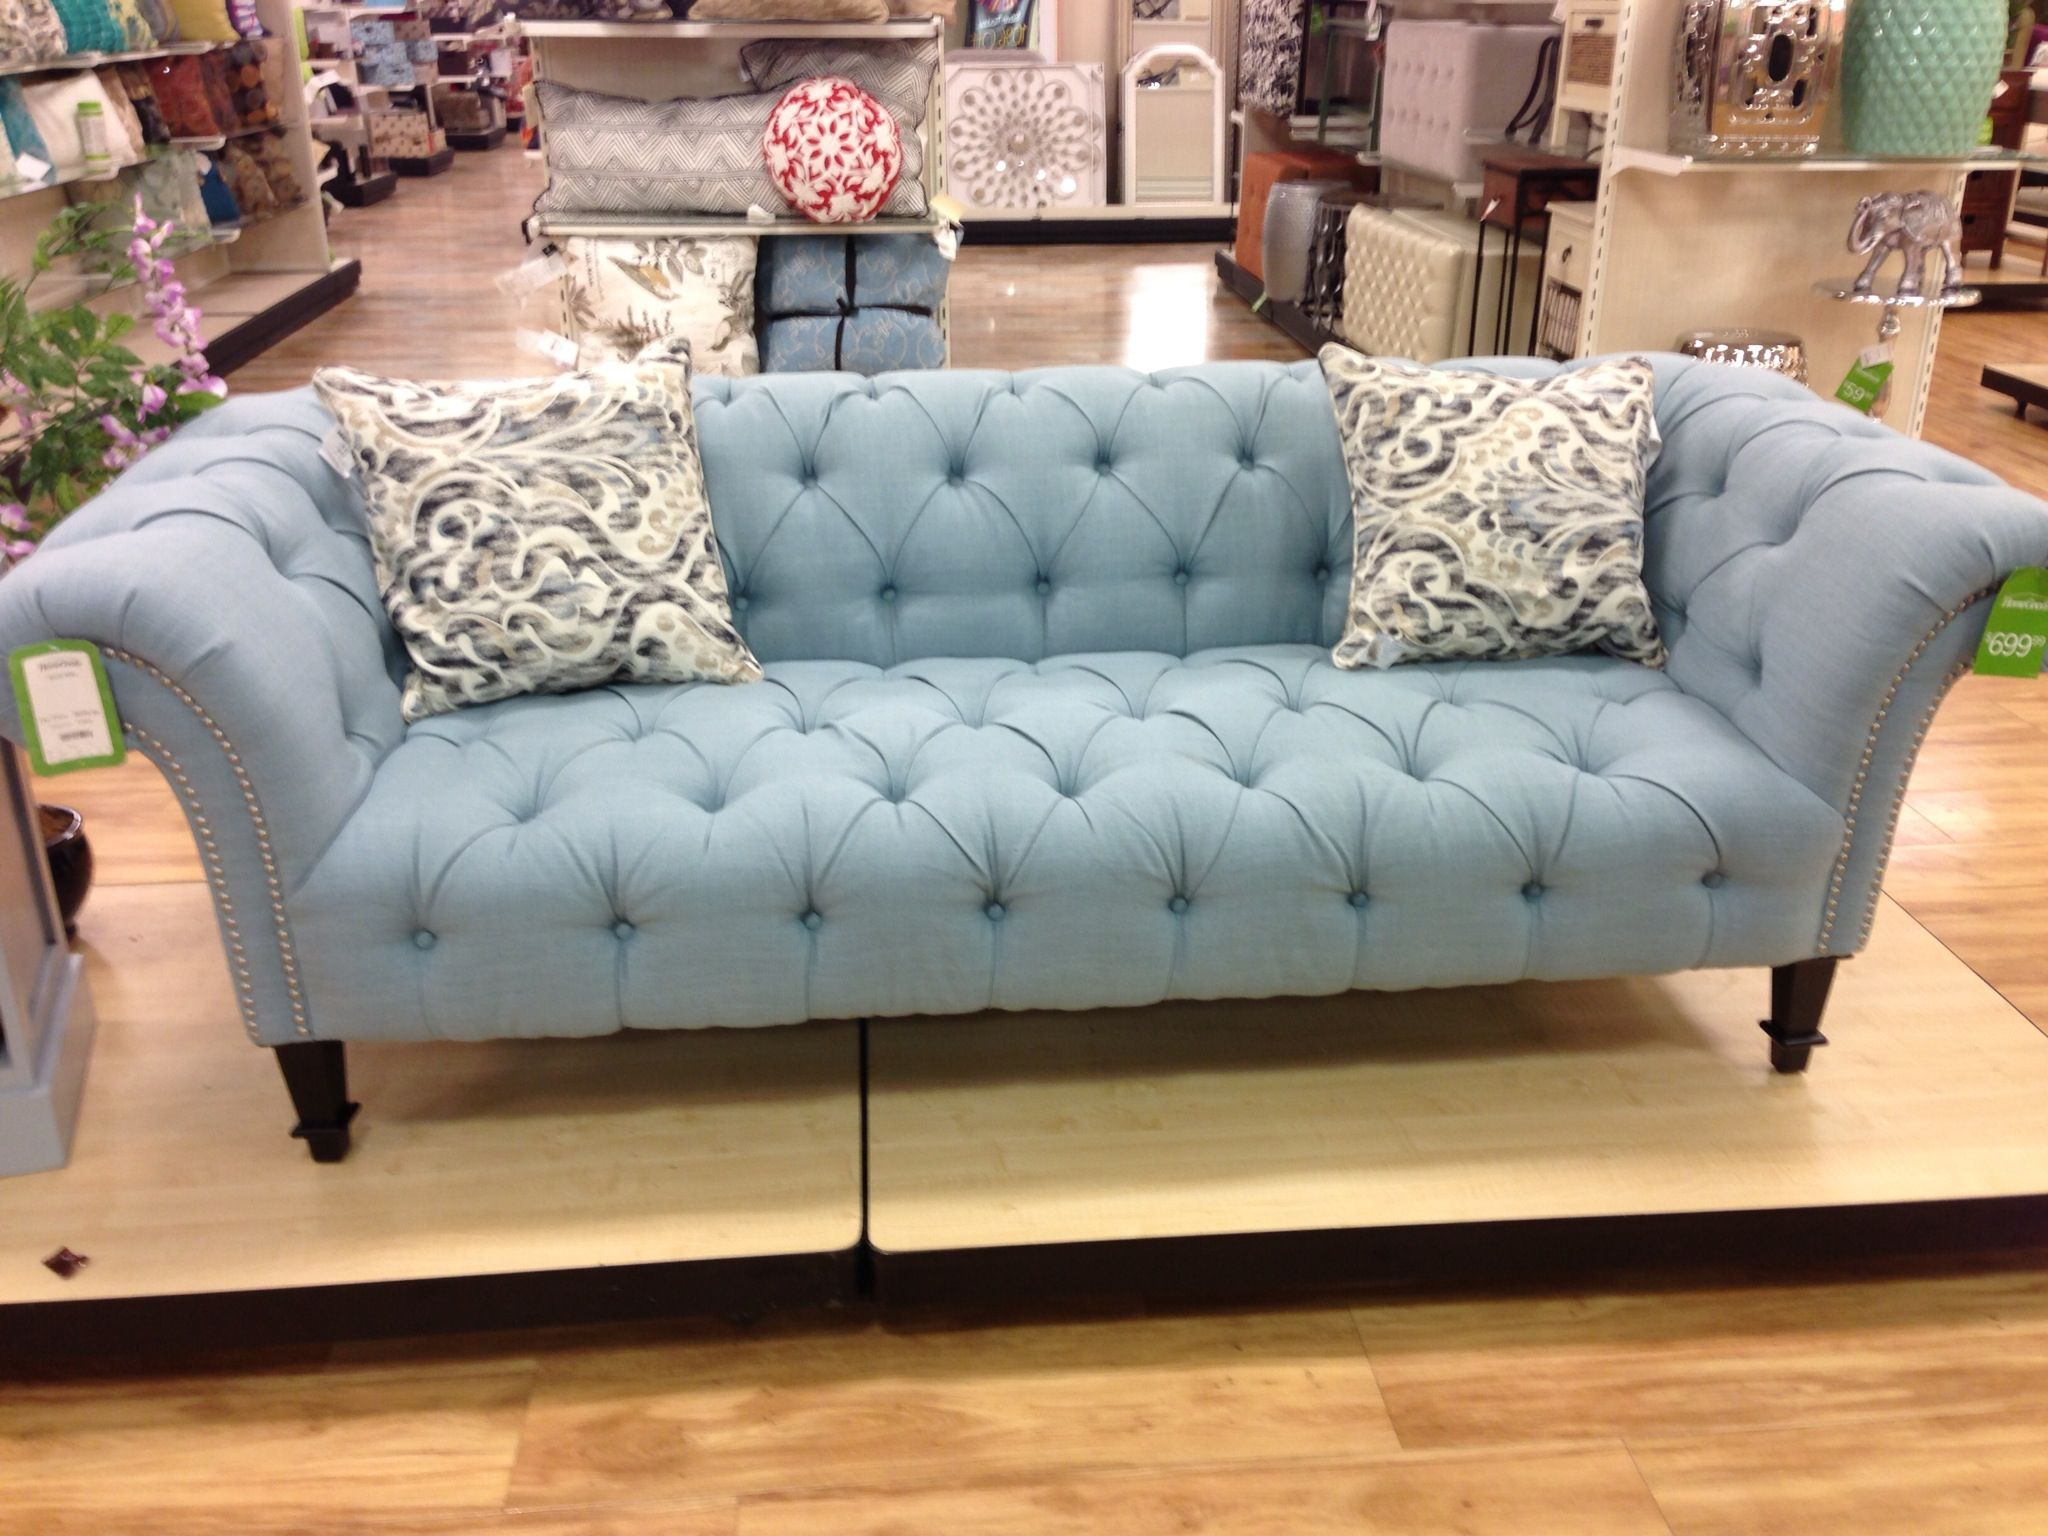 Blue tufted sofa  Living room decor inspiration, Blue tufted sofa